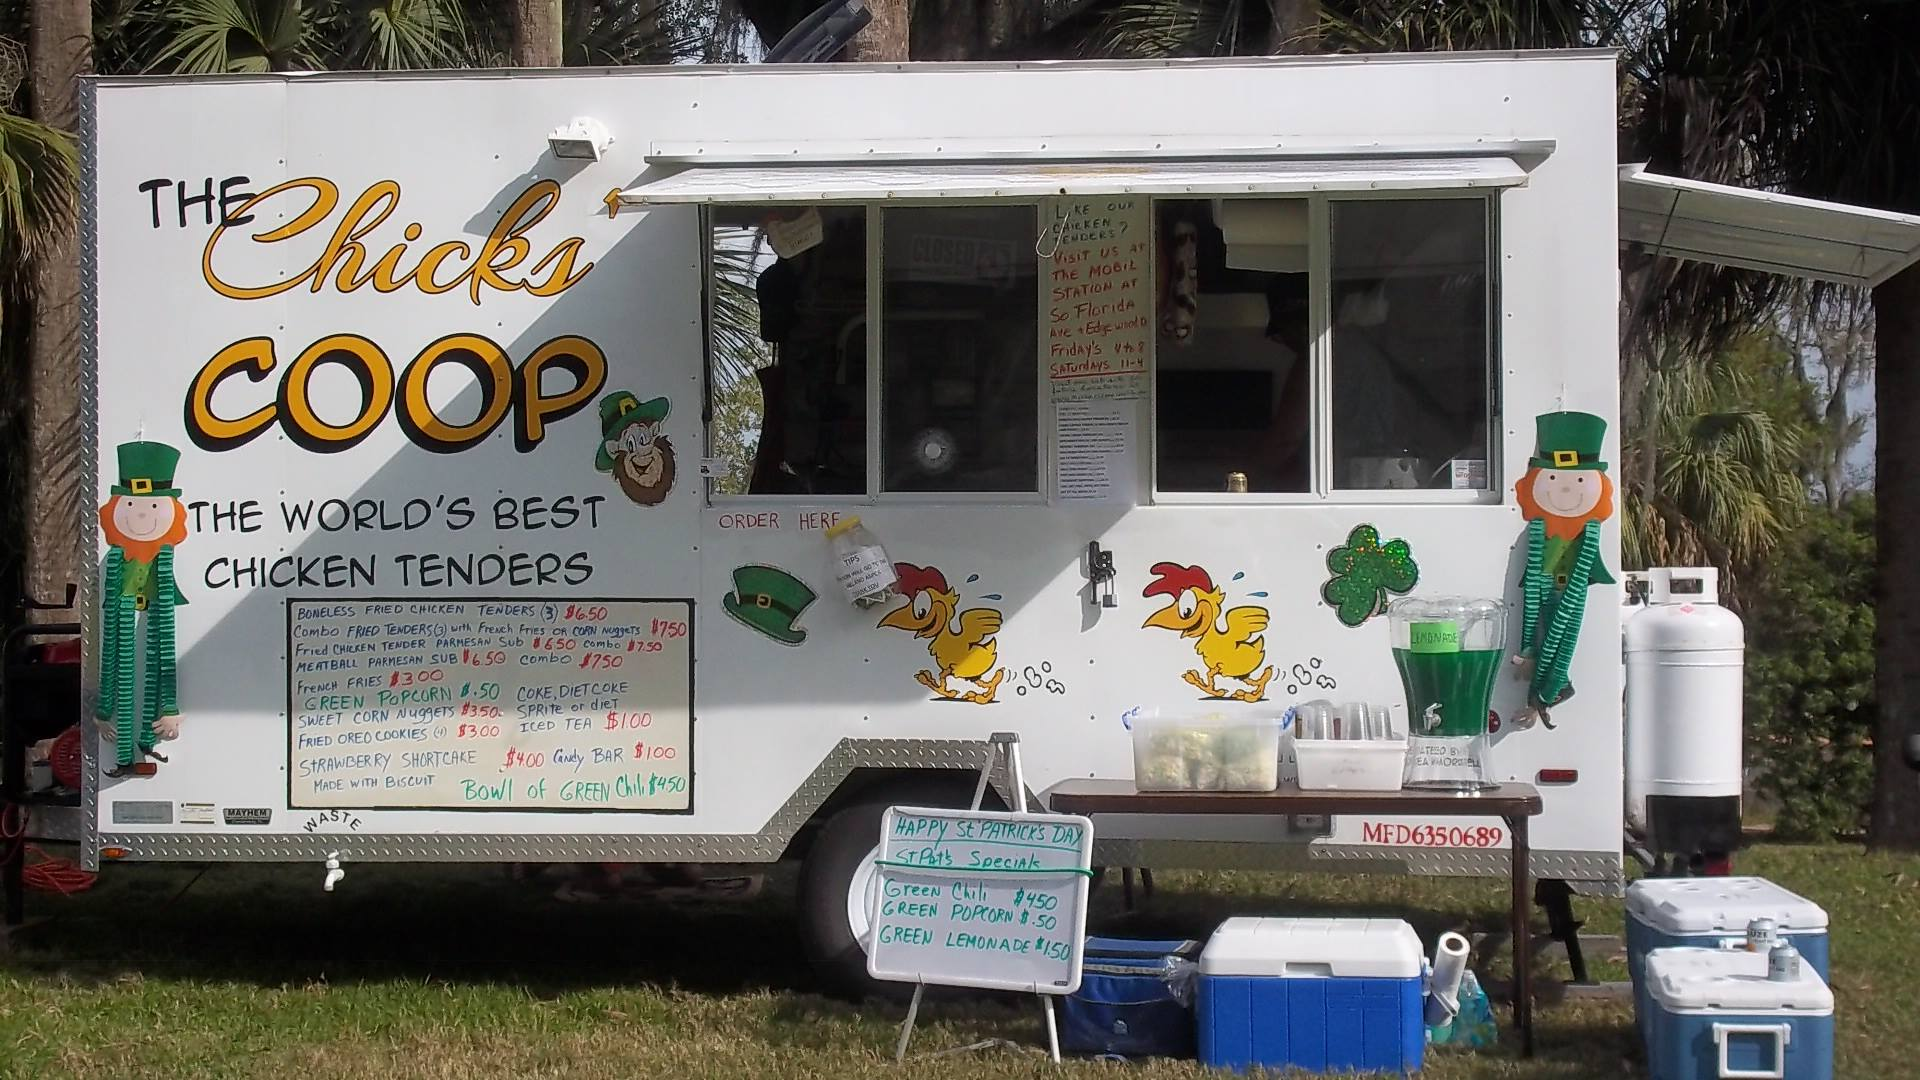 The Chicks' Coop Food Truck